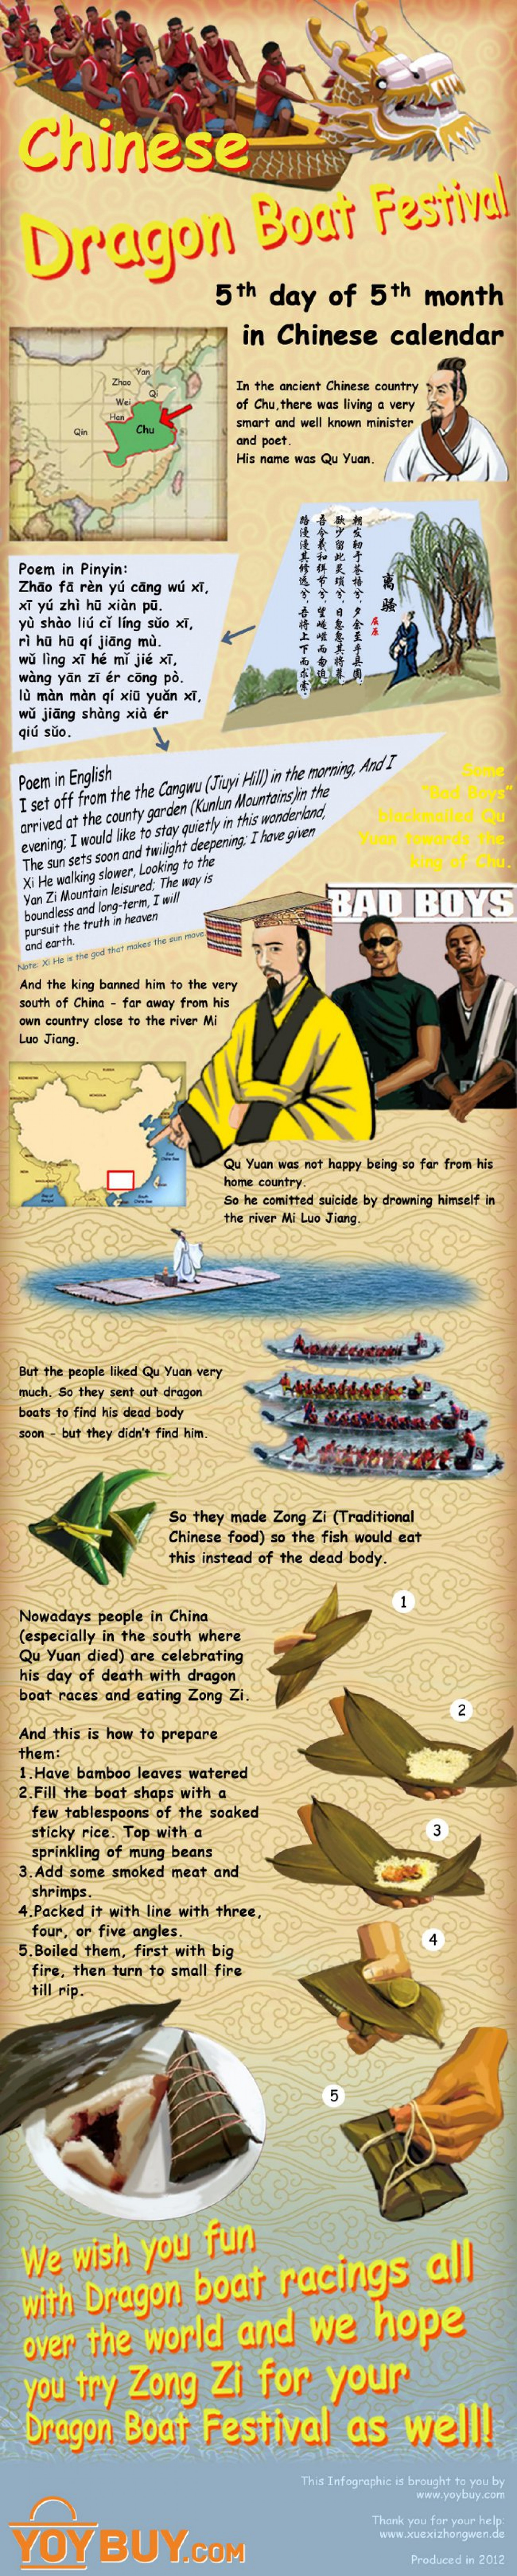 Chinese Dragon Boat Festival (infographic) Infographic